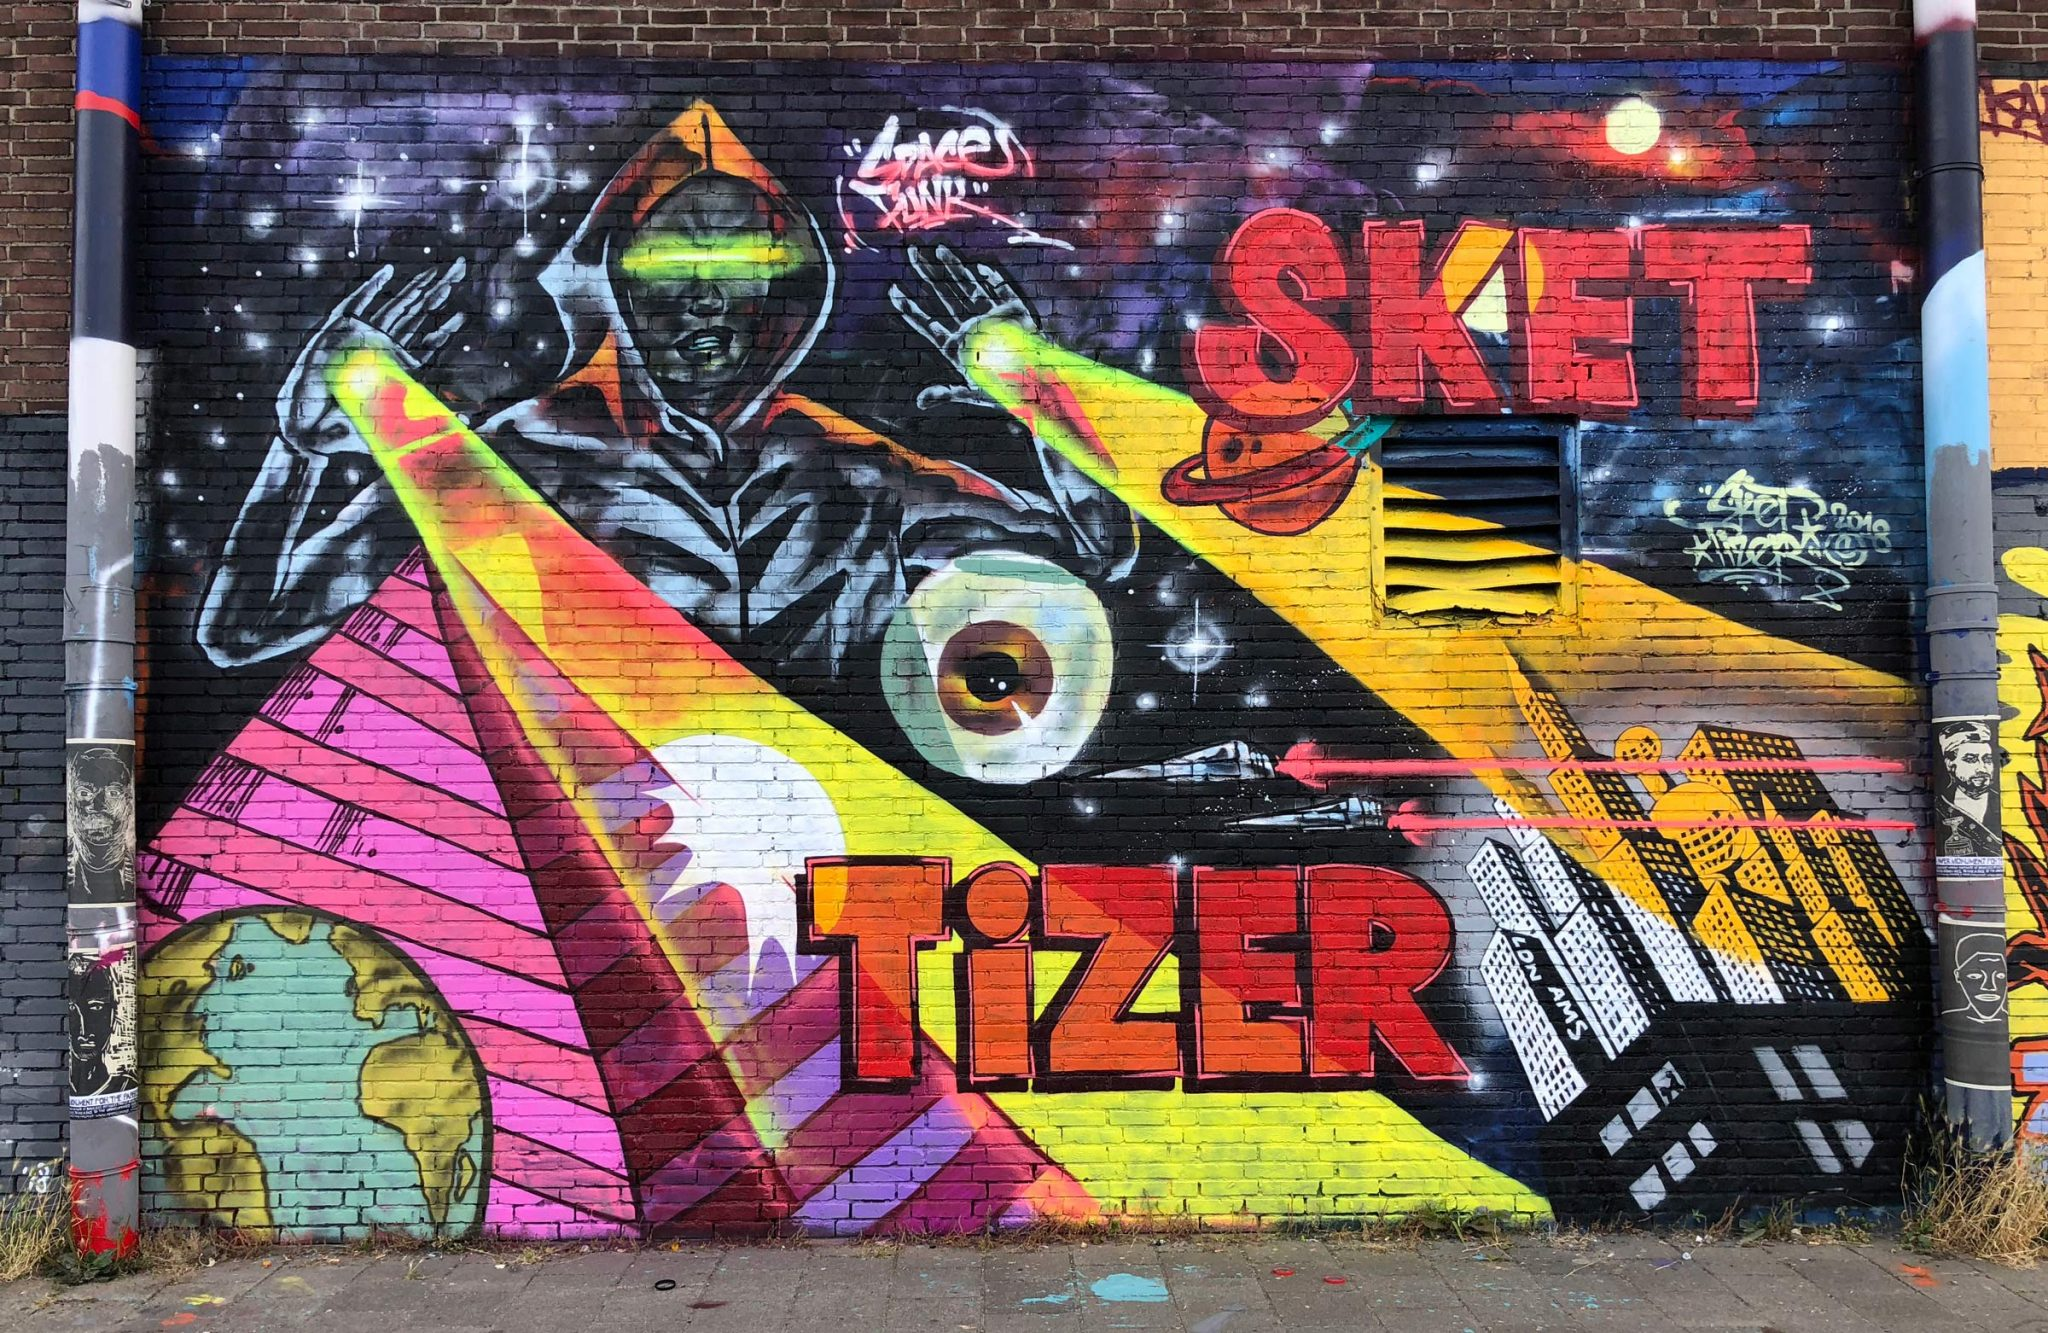 Tizer_Sket185_SpaceFunk2018_NDSM